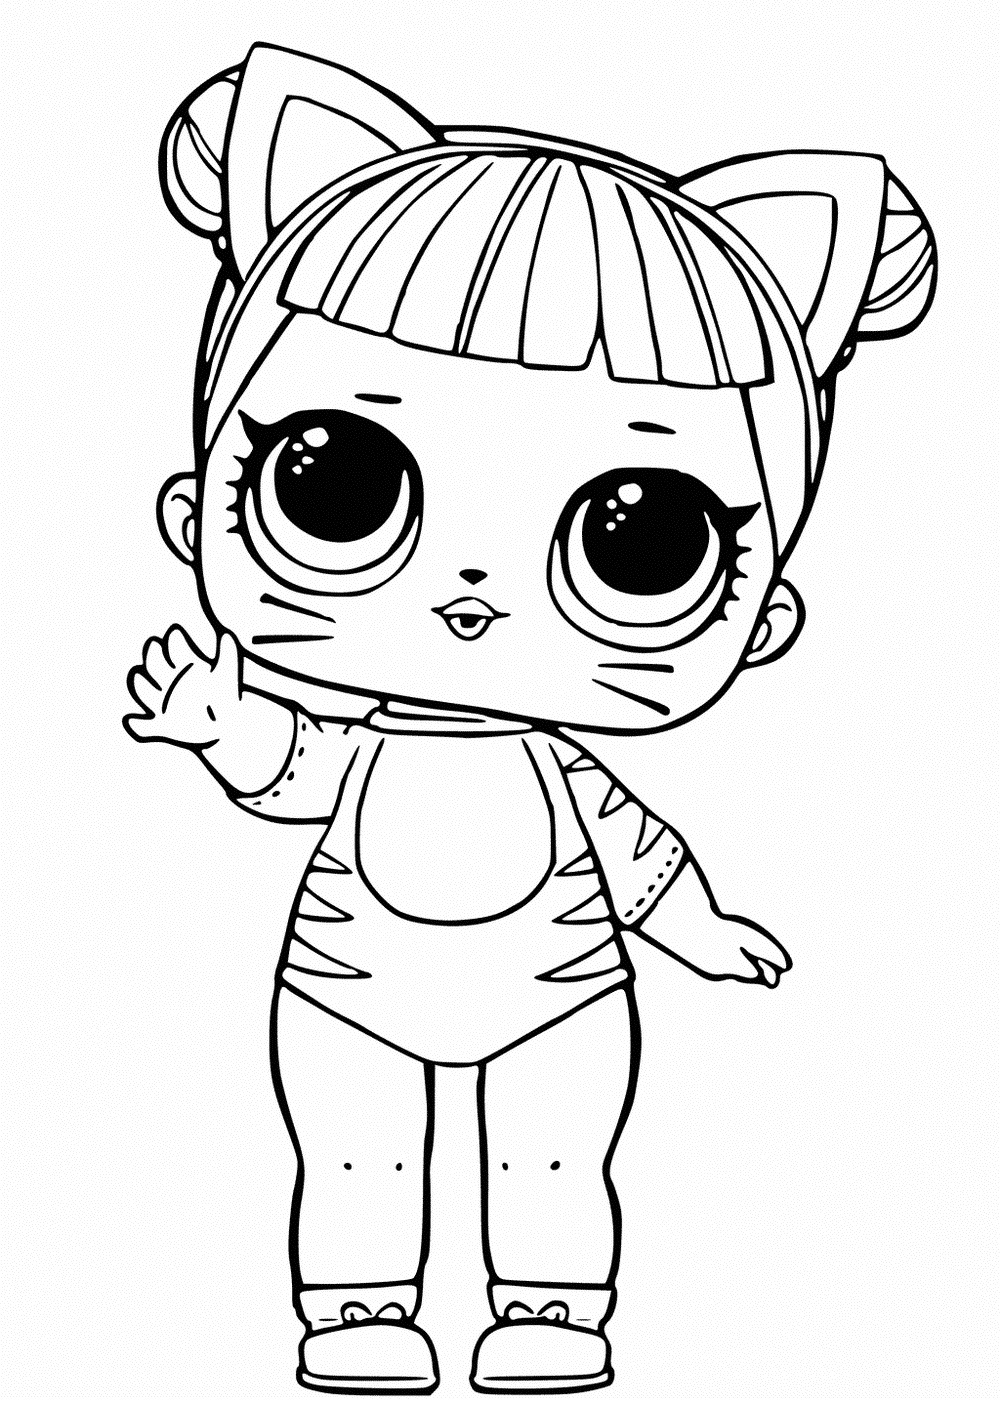 doll colouring pages american girl doll coloring pages to download and print doll pages colouring